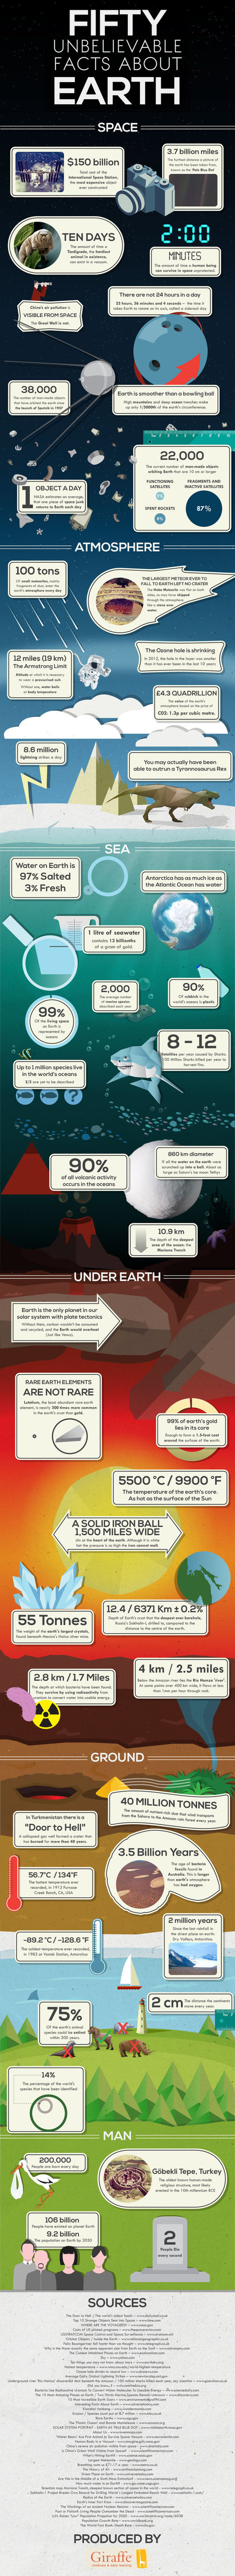 50 Incredible Facts About Earth [Infographic] | green infographics | Scoop.it